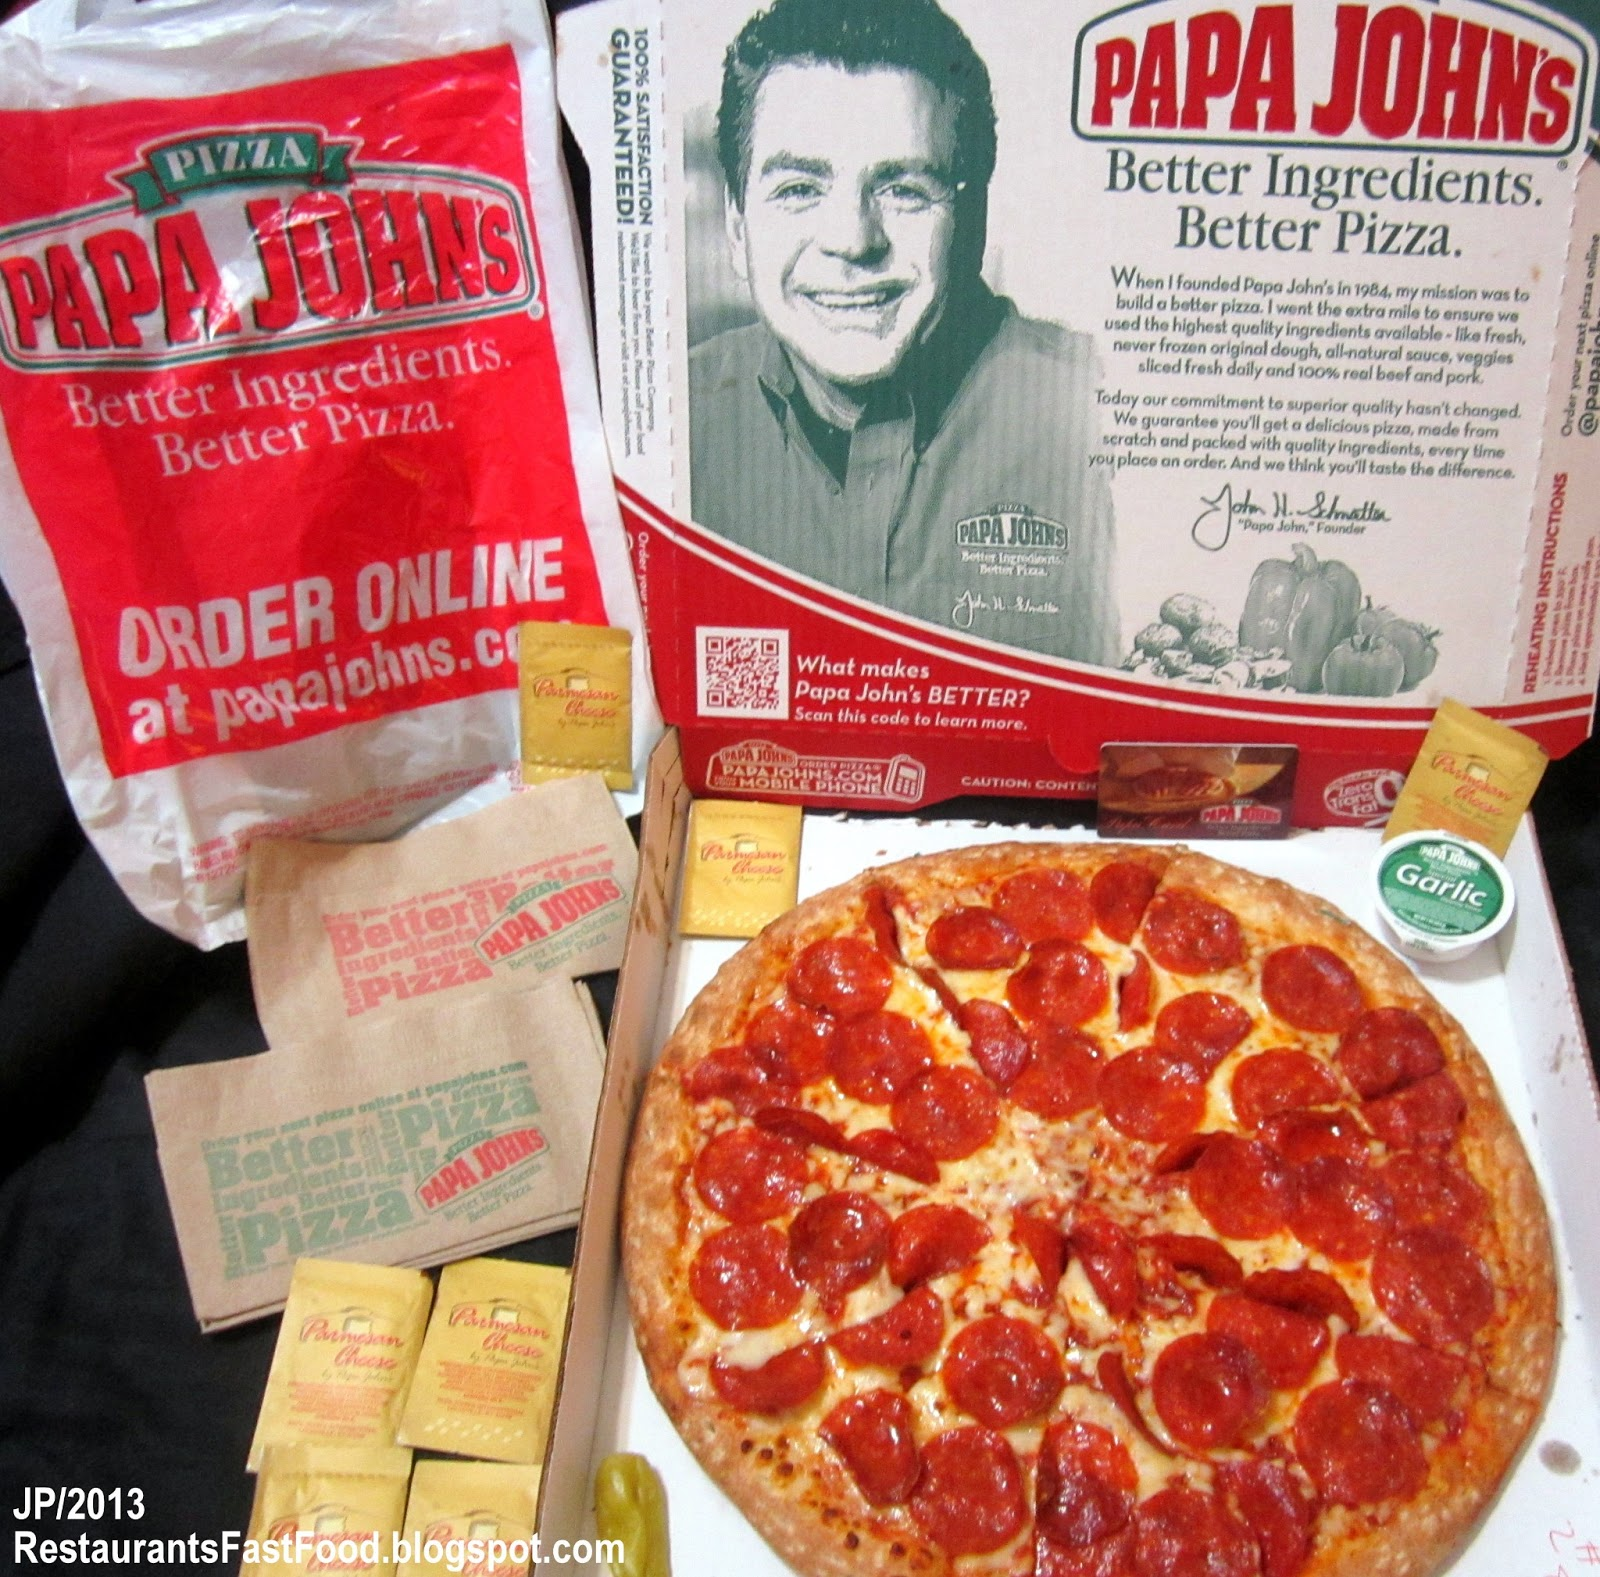 Restaurant Fast Food Menu McDonald's DQ BK Hamburger Pizza ... Papa Johns Pizza Box Opened